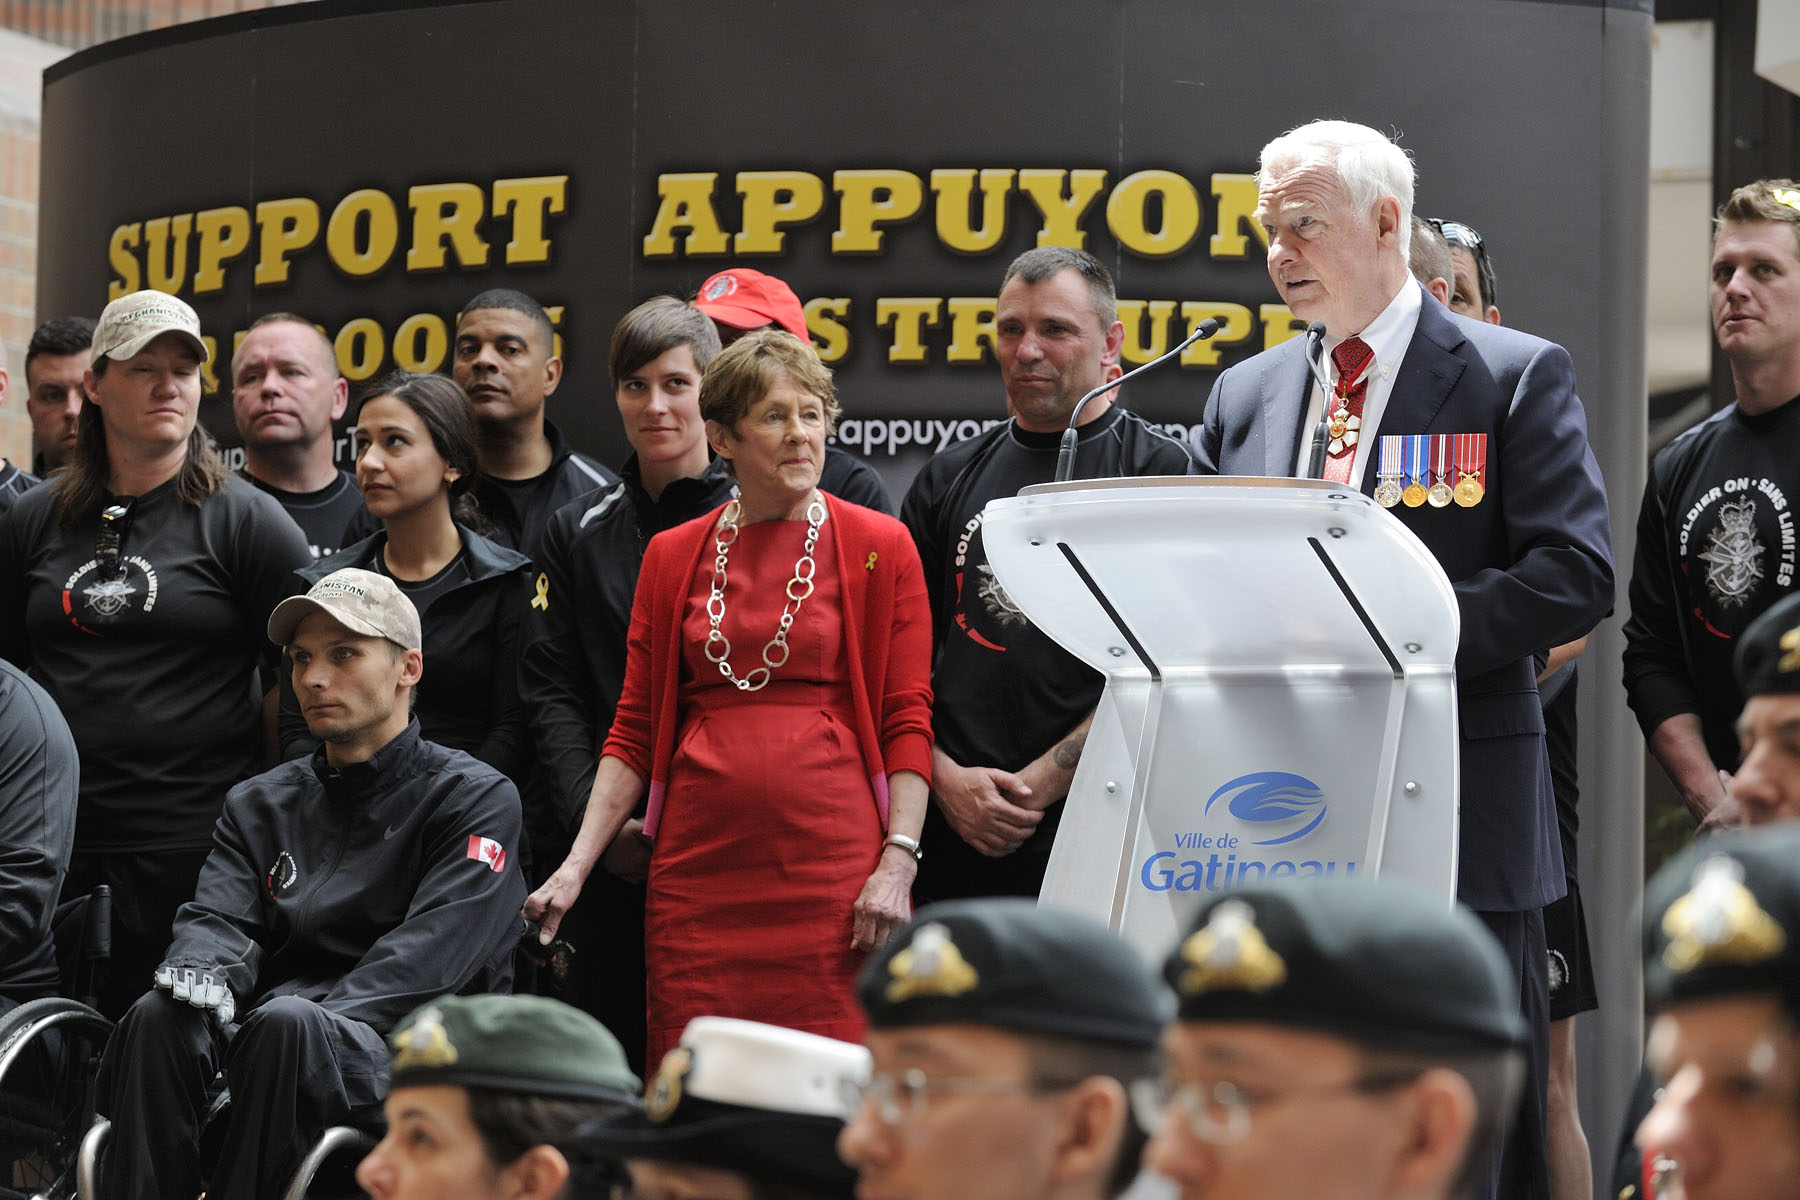 The Governor General said a few words of support to the participants.